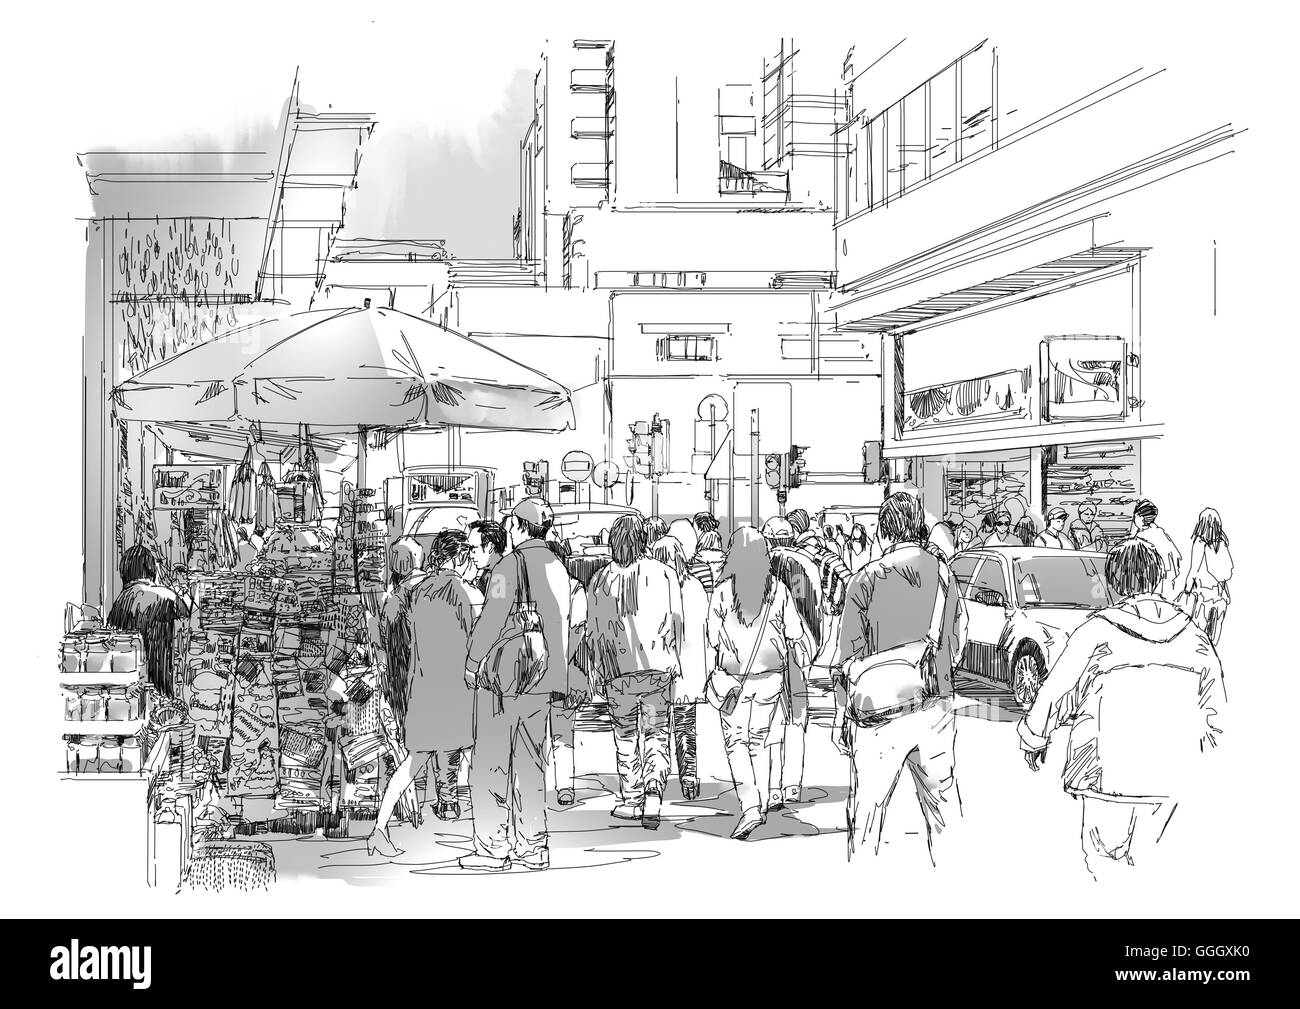 sketch of crowd of people in commercial and busy street - Stock Image